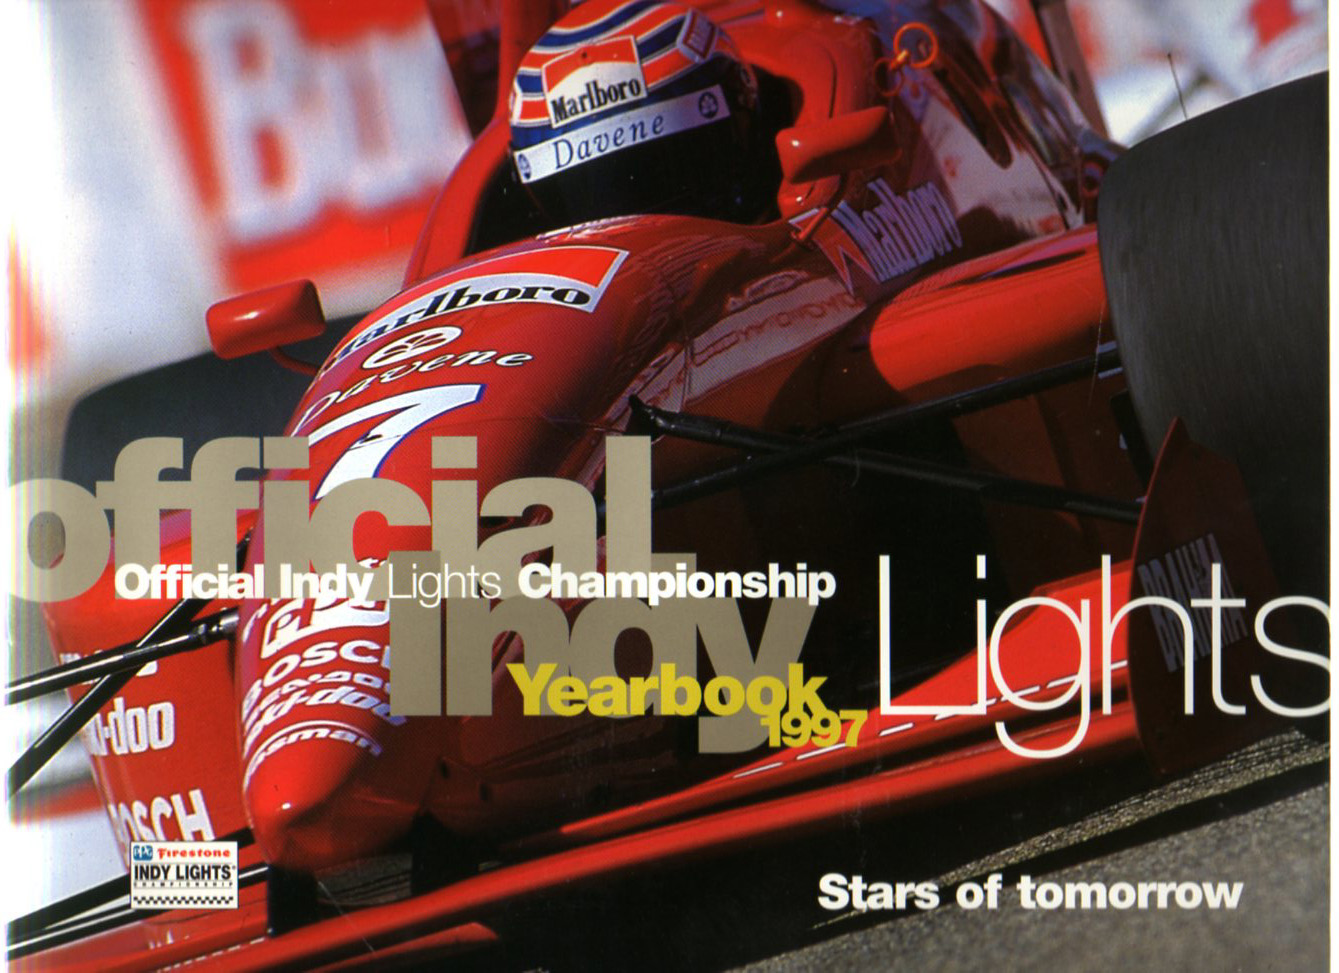 Official Indy Lights Championship Yearbook 1997 - Stars of tomorrow